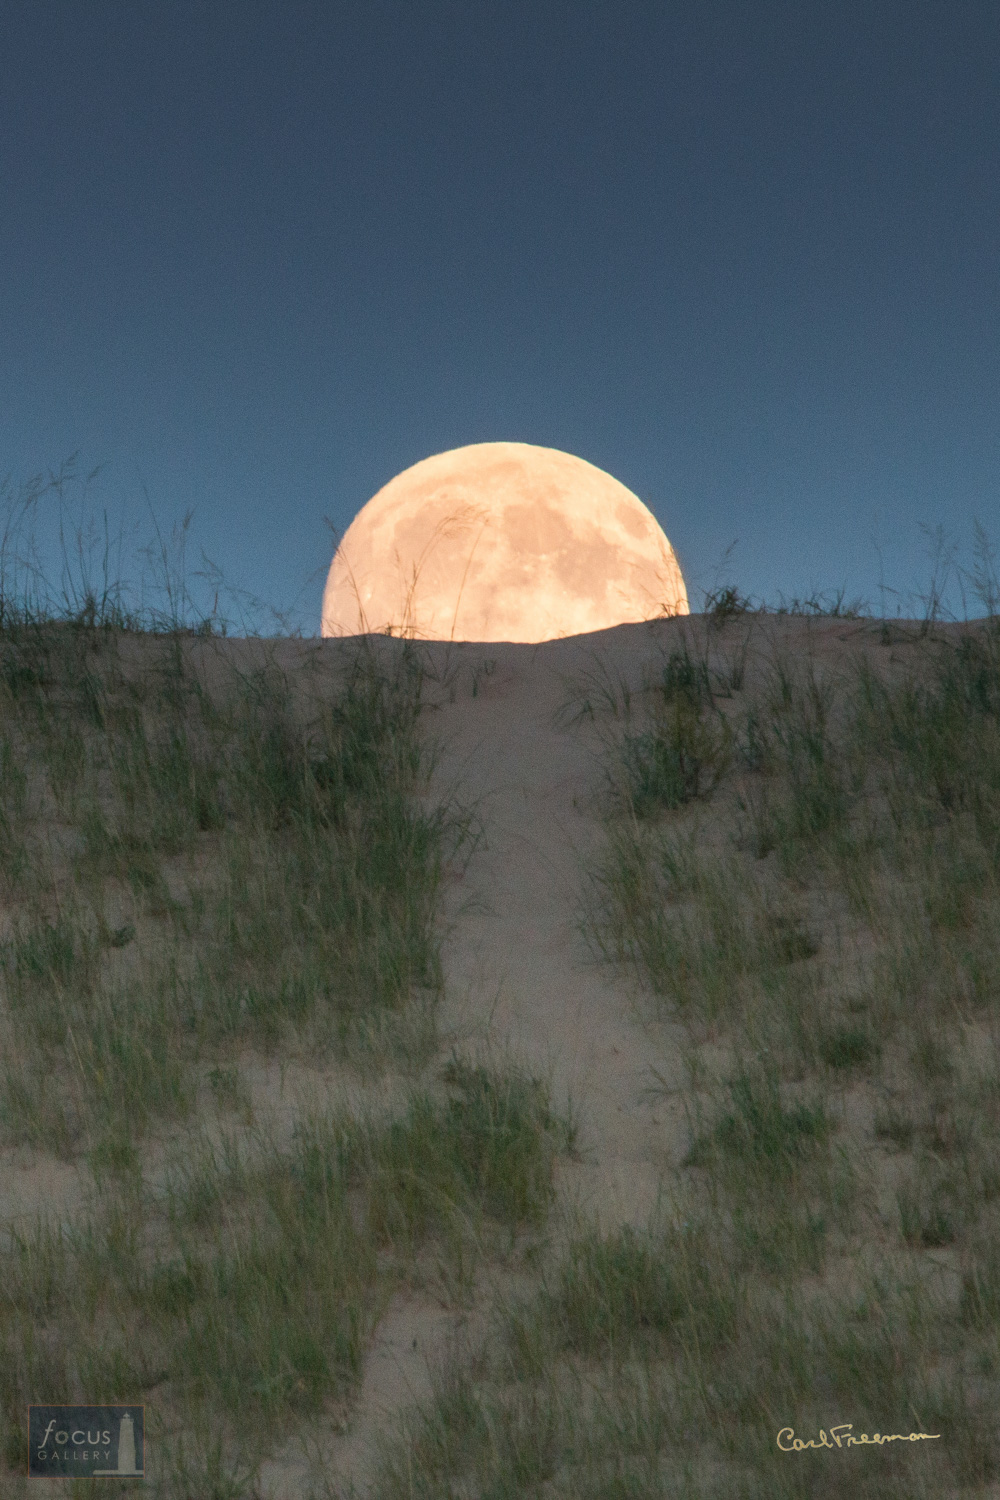 Photo © Carl Freeman Full moon rise, looks like one could walk down the path and jump over the moon.